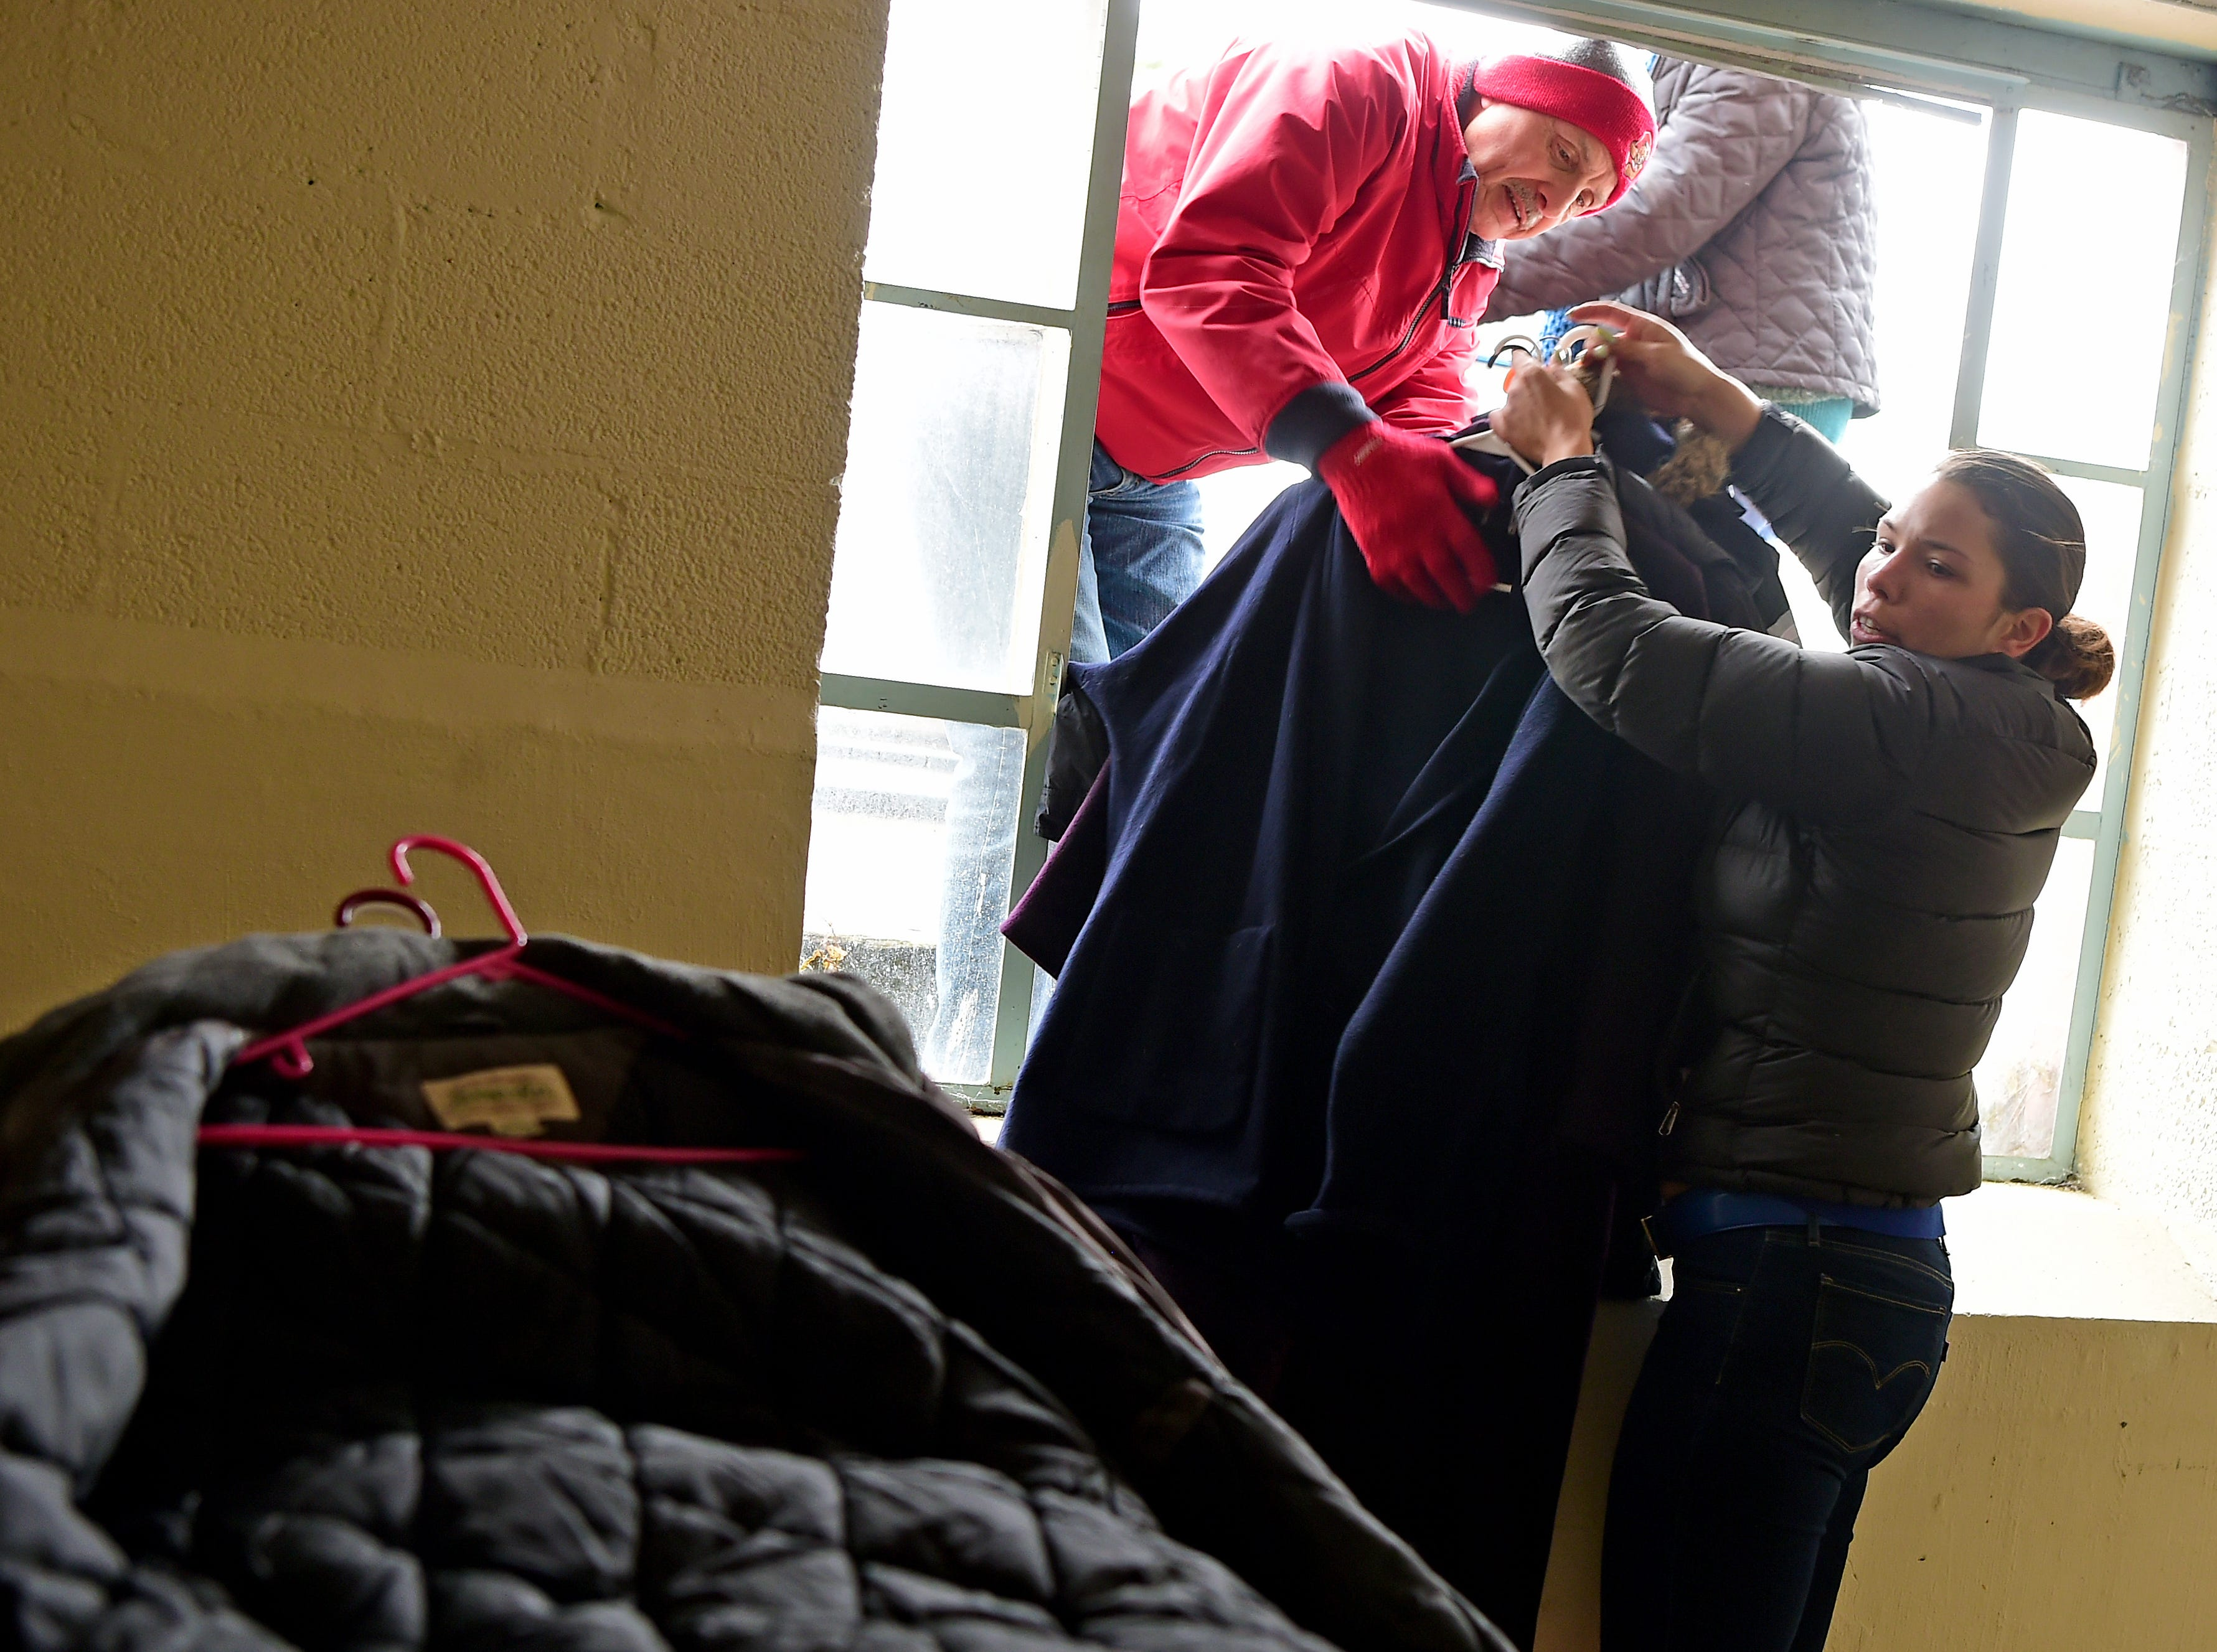 Volunteer Ed Pasto of Lansing, and Catholic Charities caseworker Shay Washington organize donated winter clothing donations in Ithaca on Thursday, November 29, 2018.